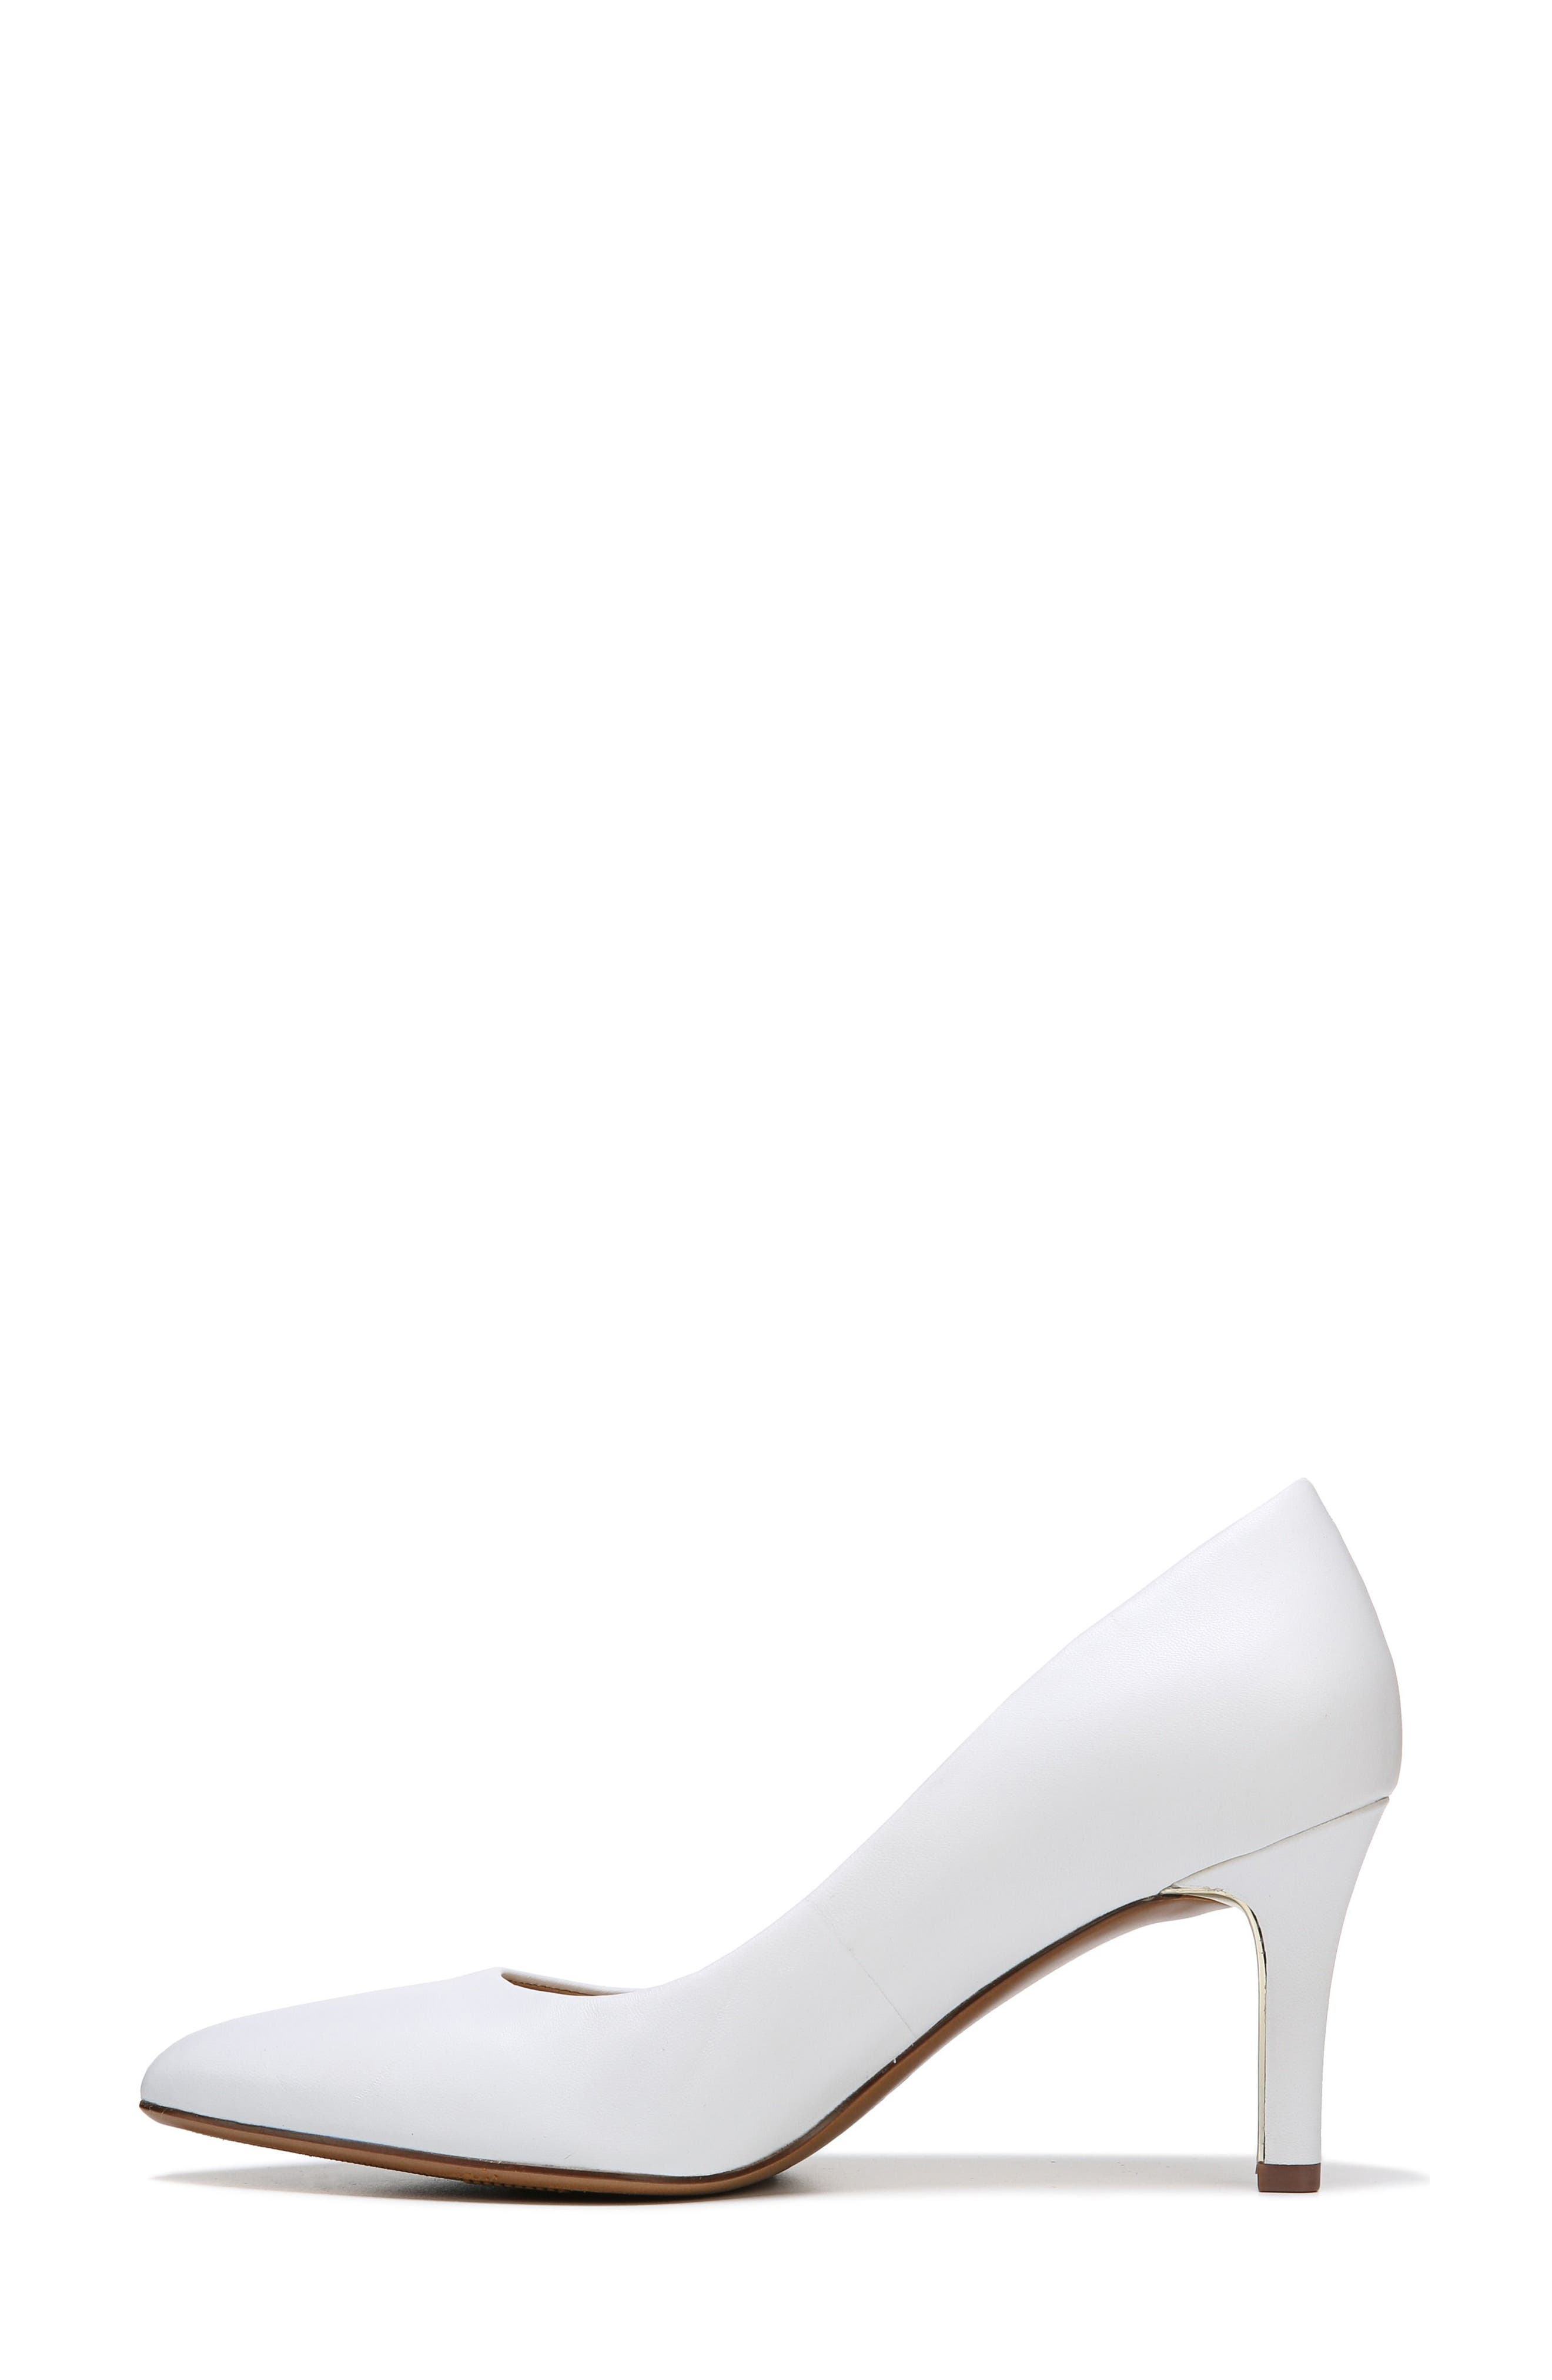 NATURALIZER, Natalie Pointy Toe Pump, Alternate thumbnail 3, color, WHITE LEATHER